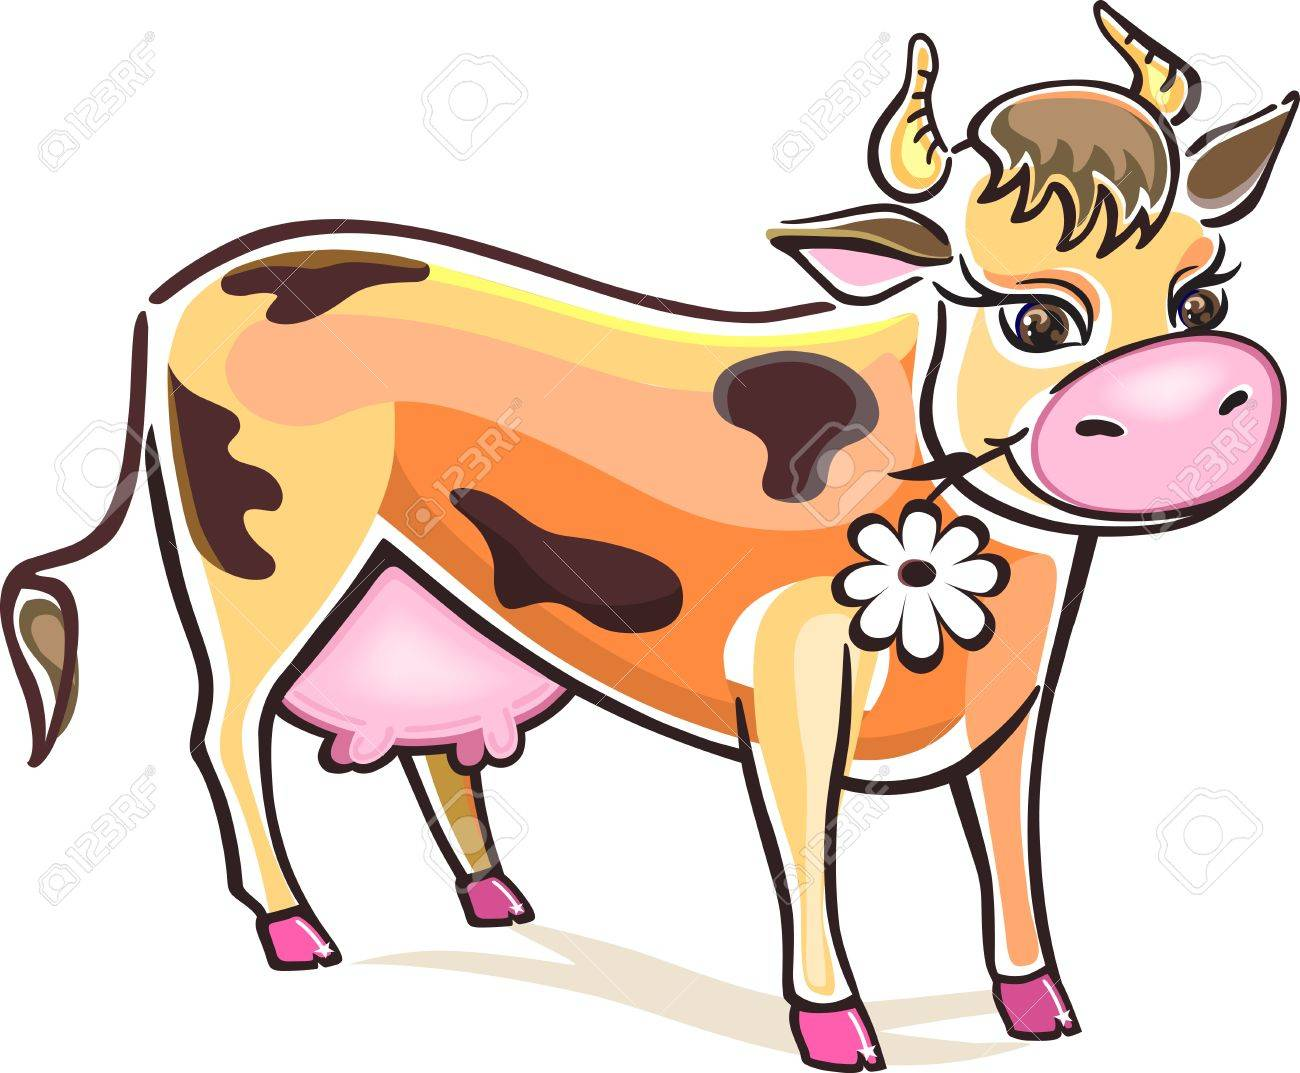 cartoon images of cow the best cow 2017